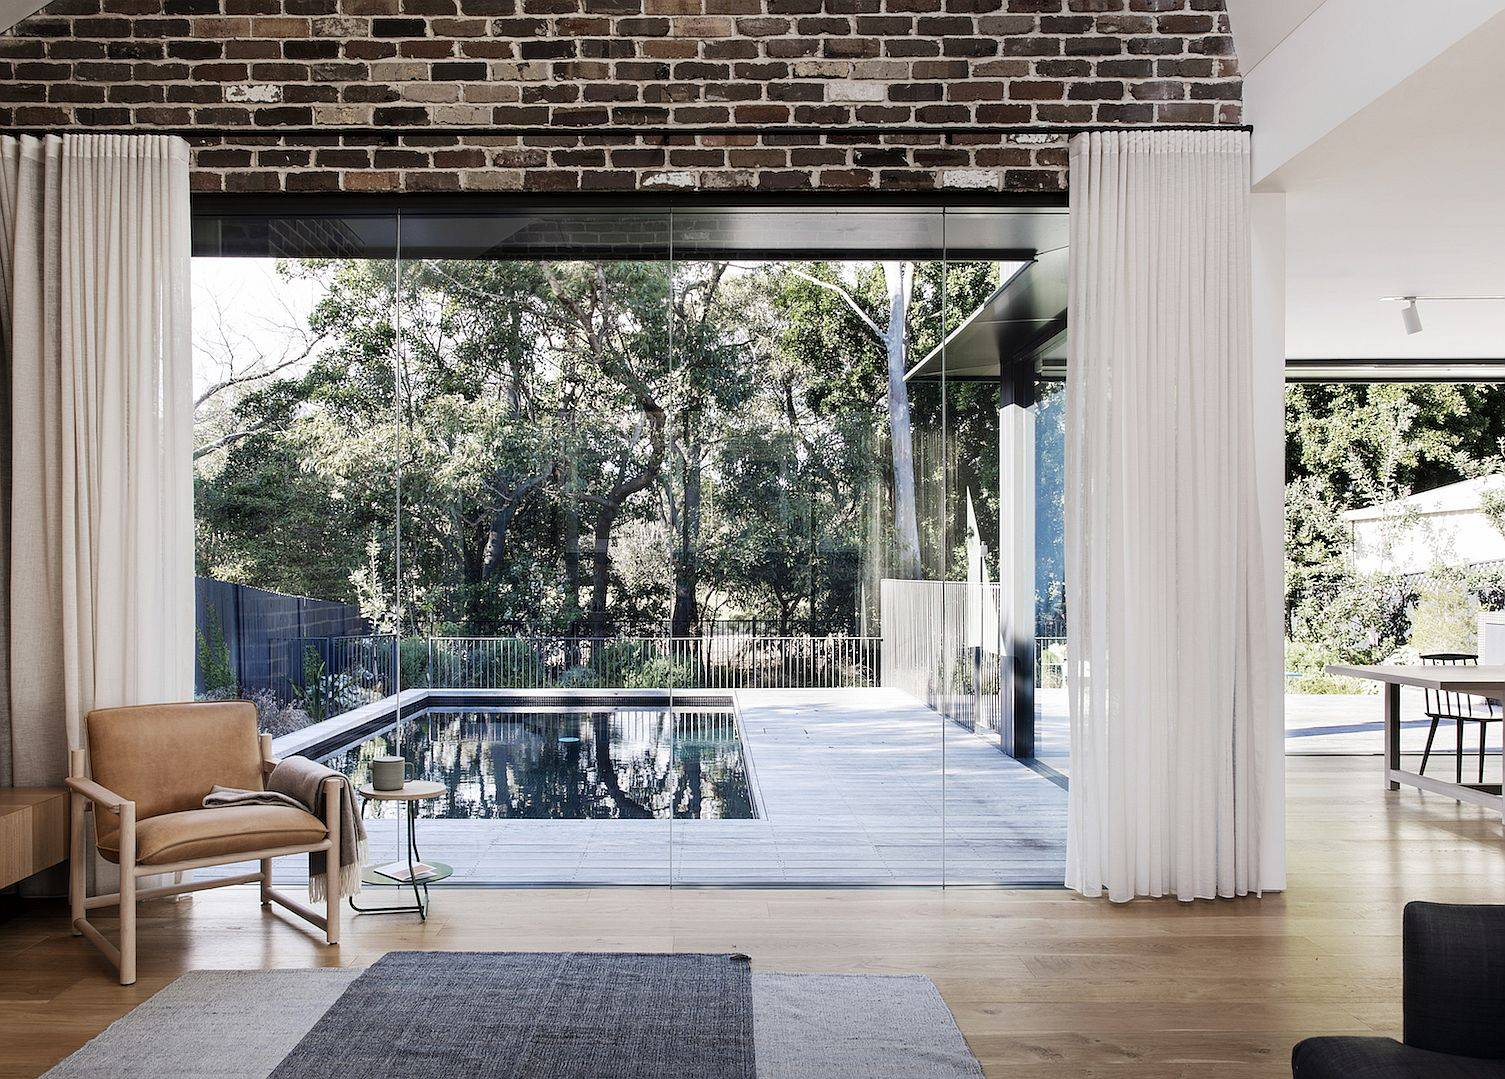 Wonderful-view-of-the-pool-area-and-the-green-outdoors-thanks-to-the-floor-to-ceiling-glass-walls-16715